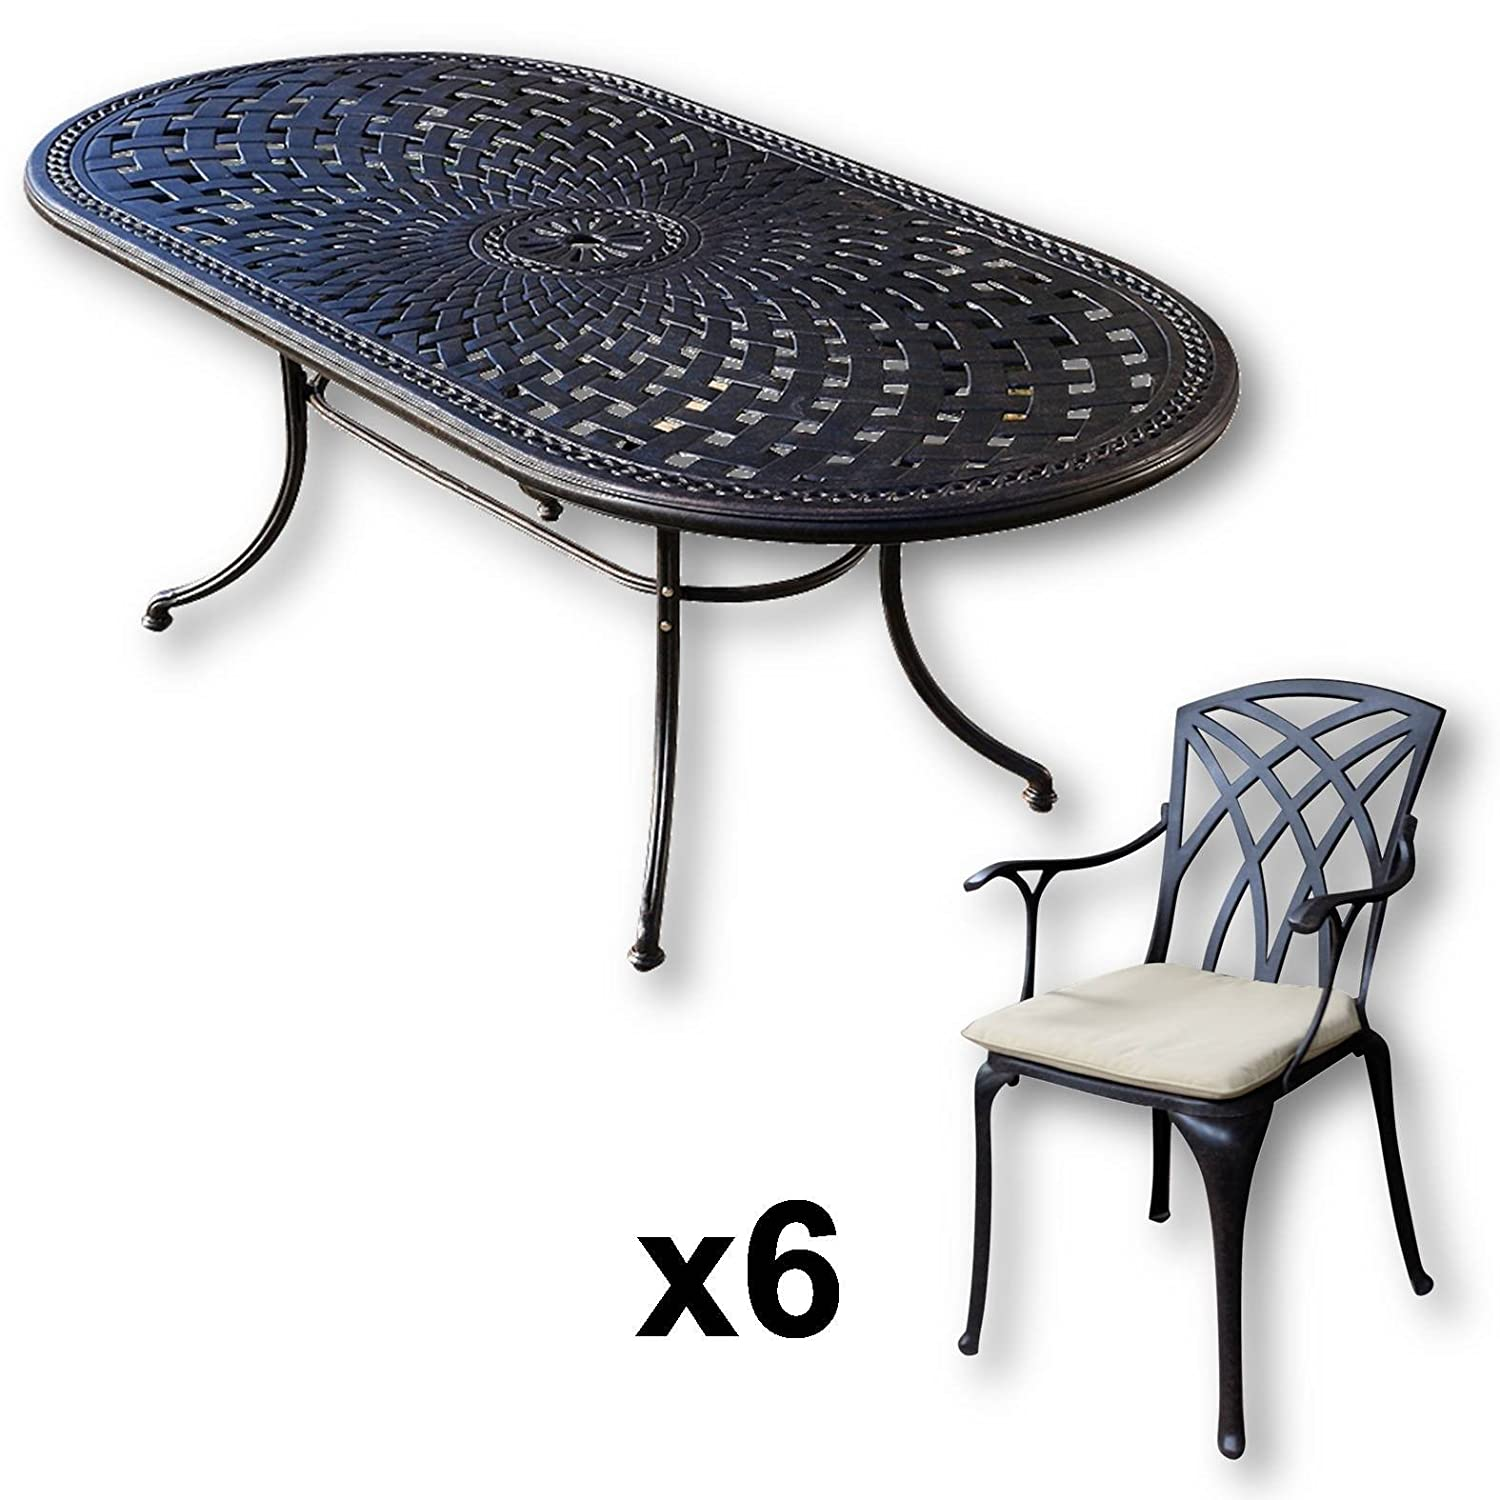 lazy susan catherine 210 x 105 cm ovaler gartentisch mit 6 st hlen gartenm bel set aus. Black Bedroom Furniture Sets. Home Design Ideas